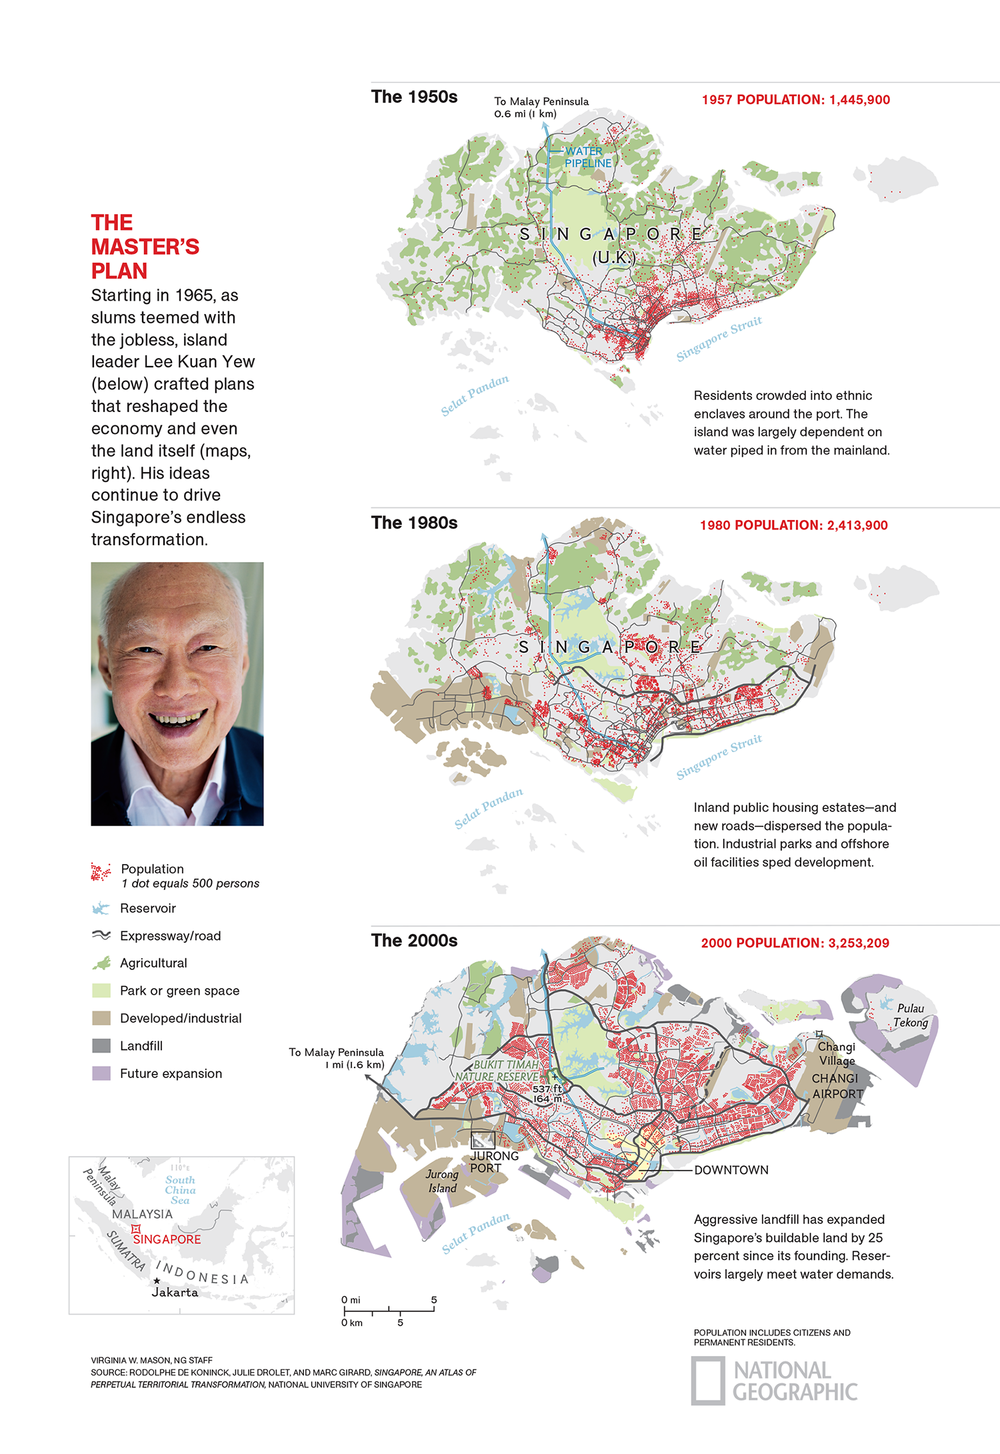 Singapore: The Master's Plan